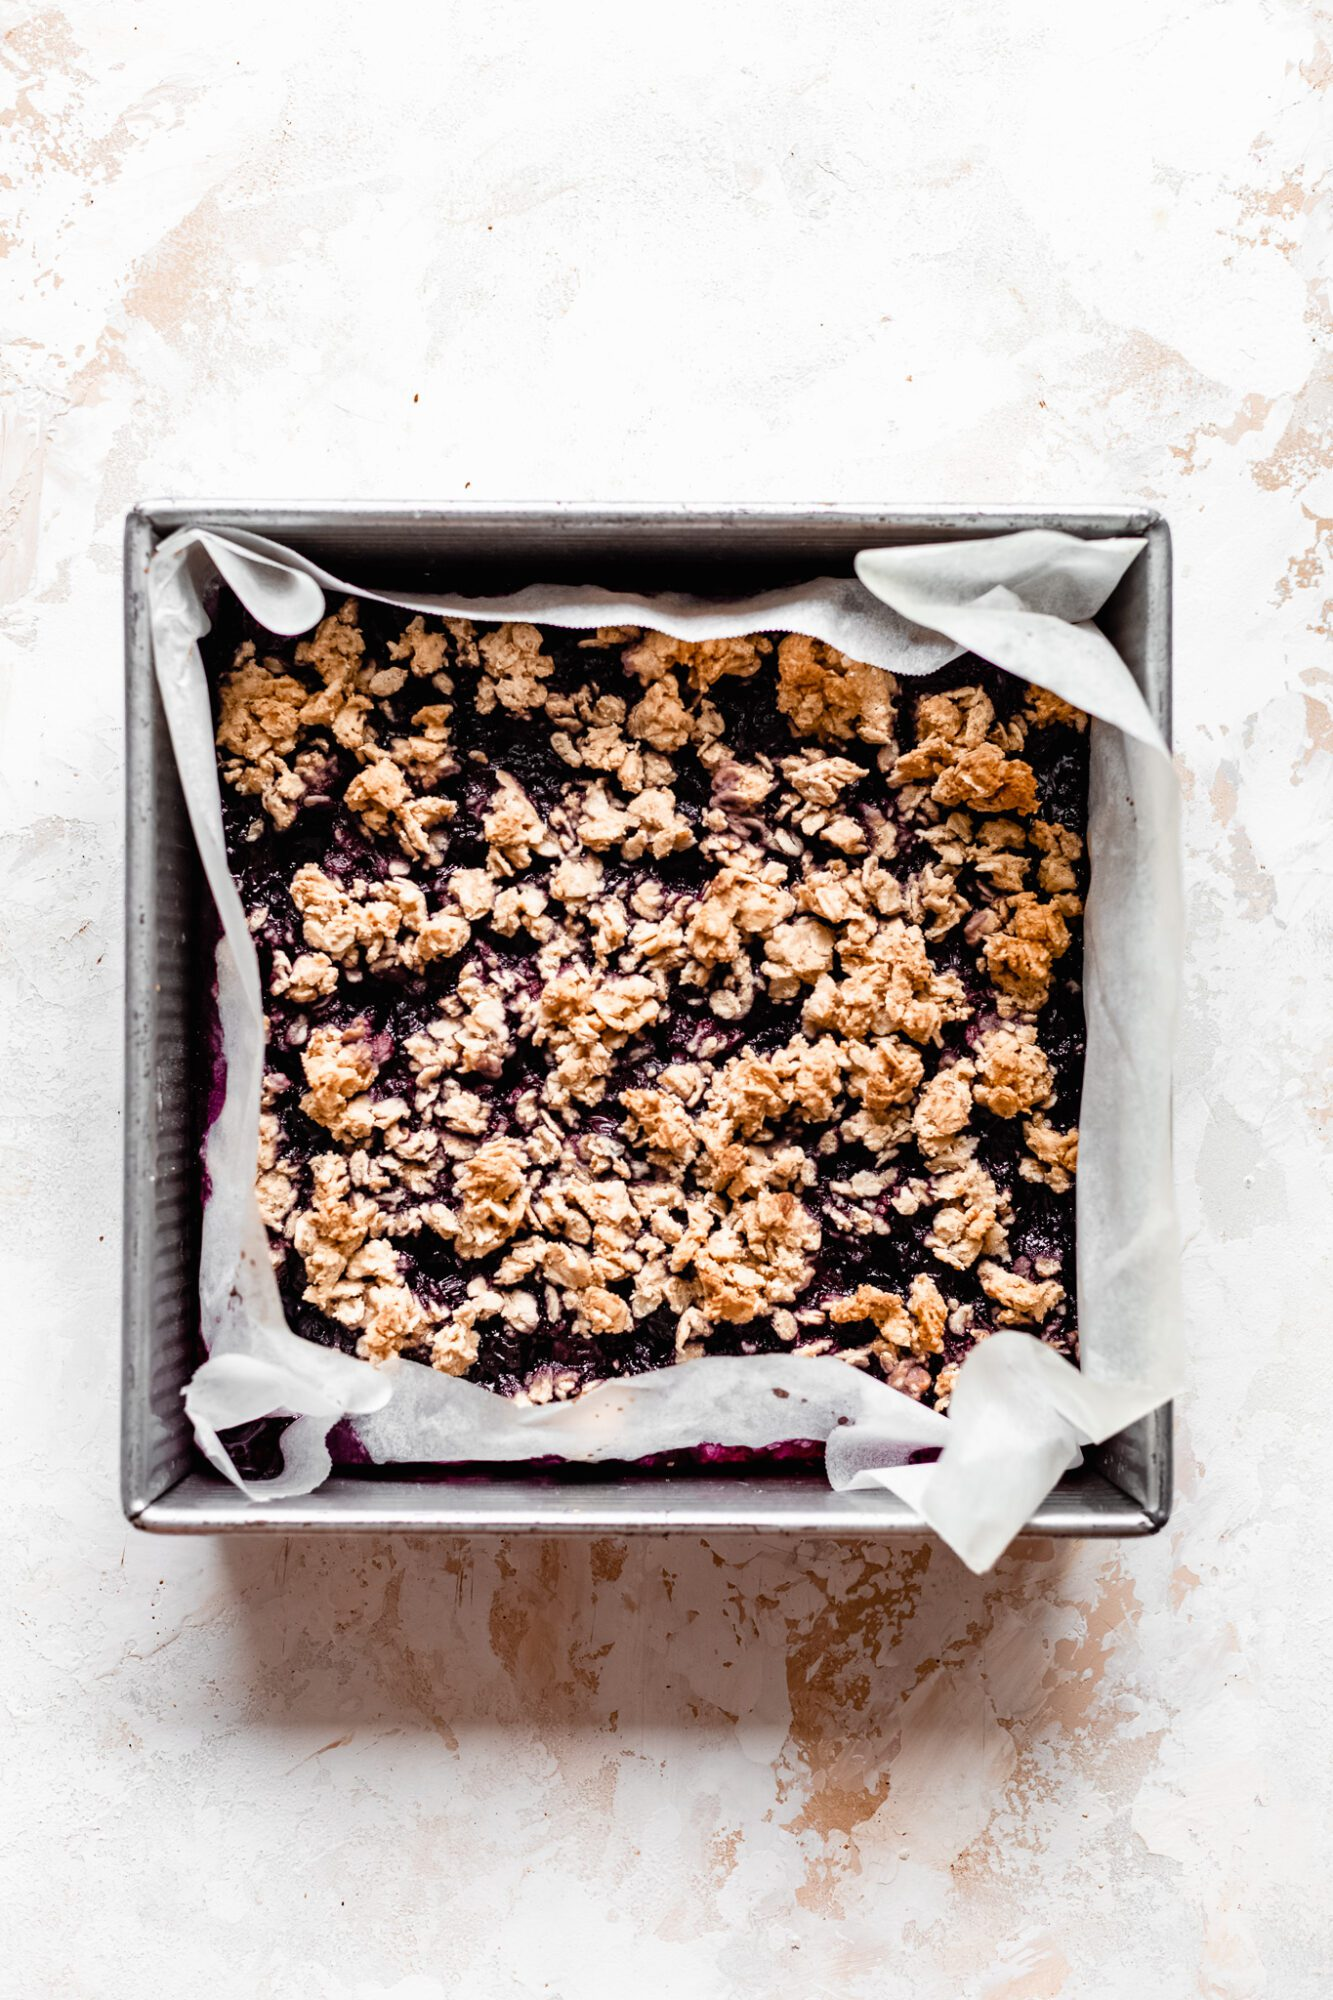 baked healthy blueberry crumble bars